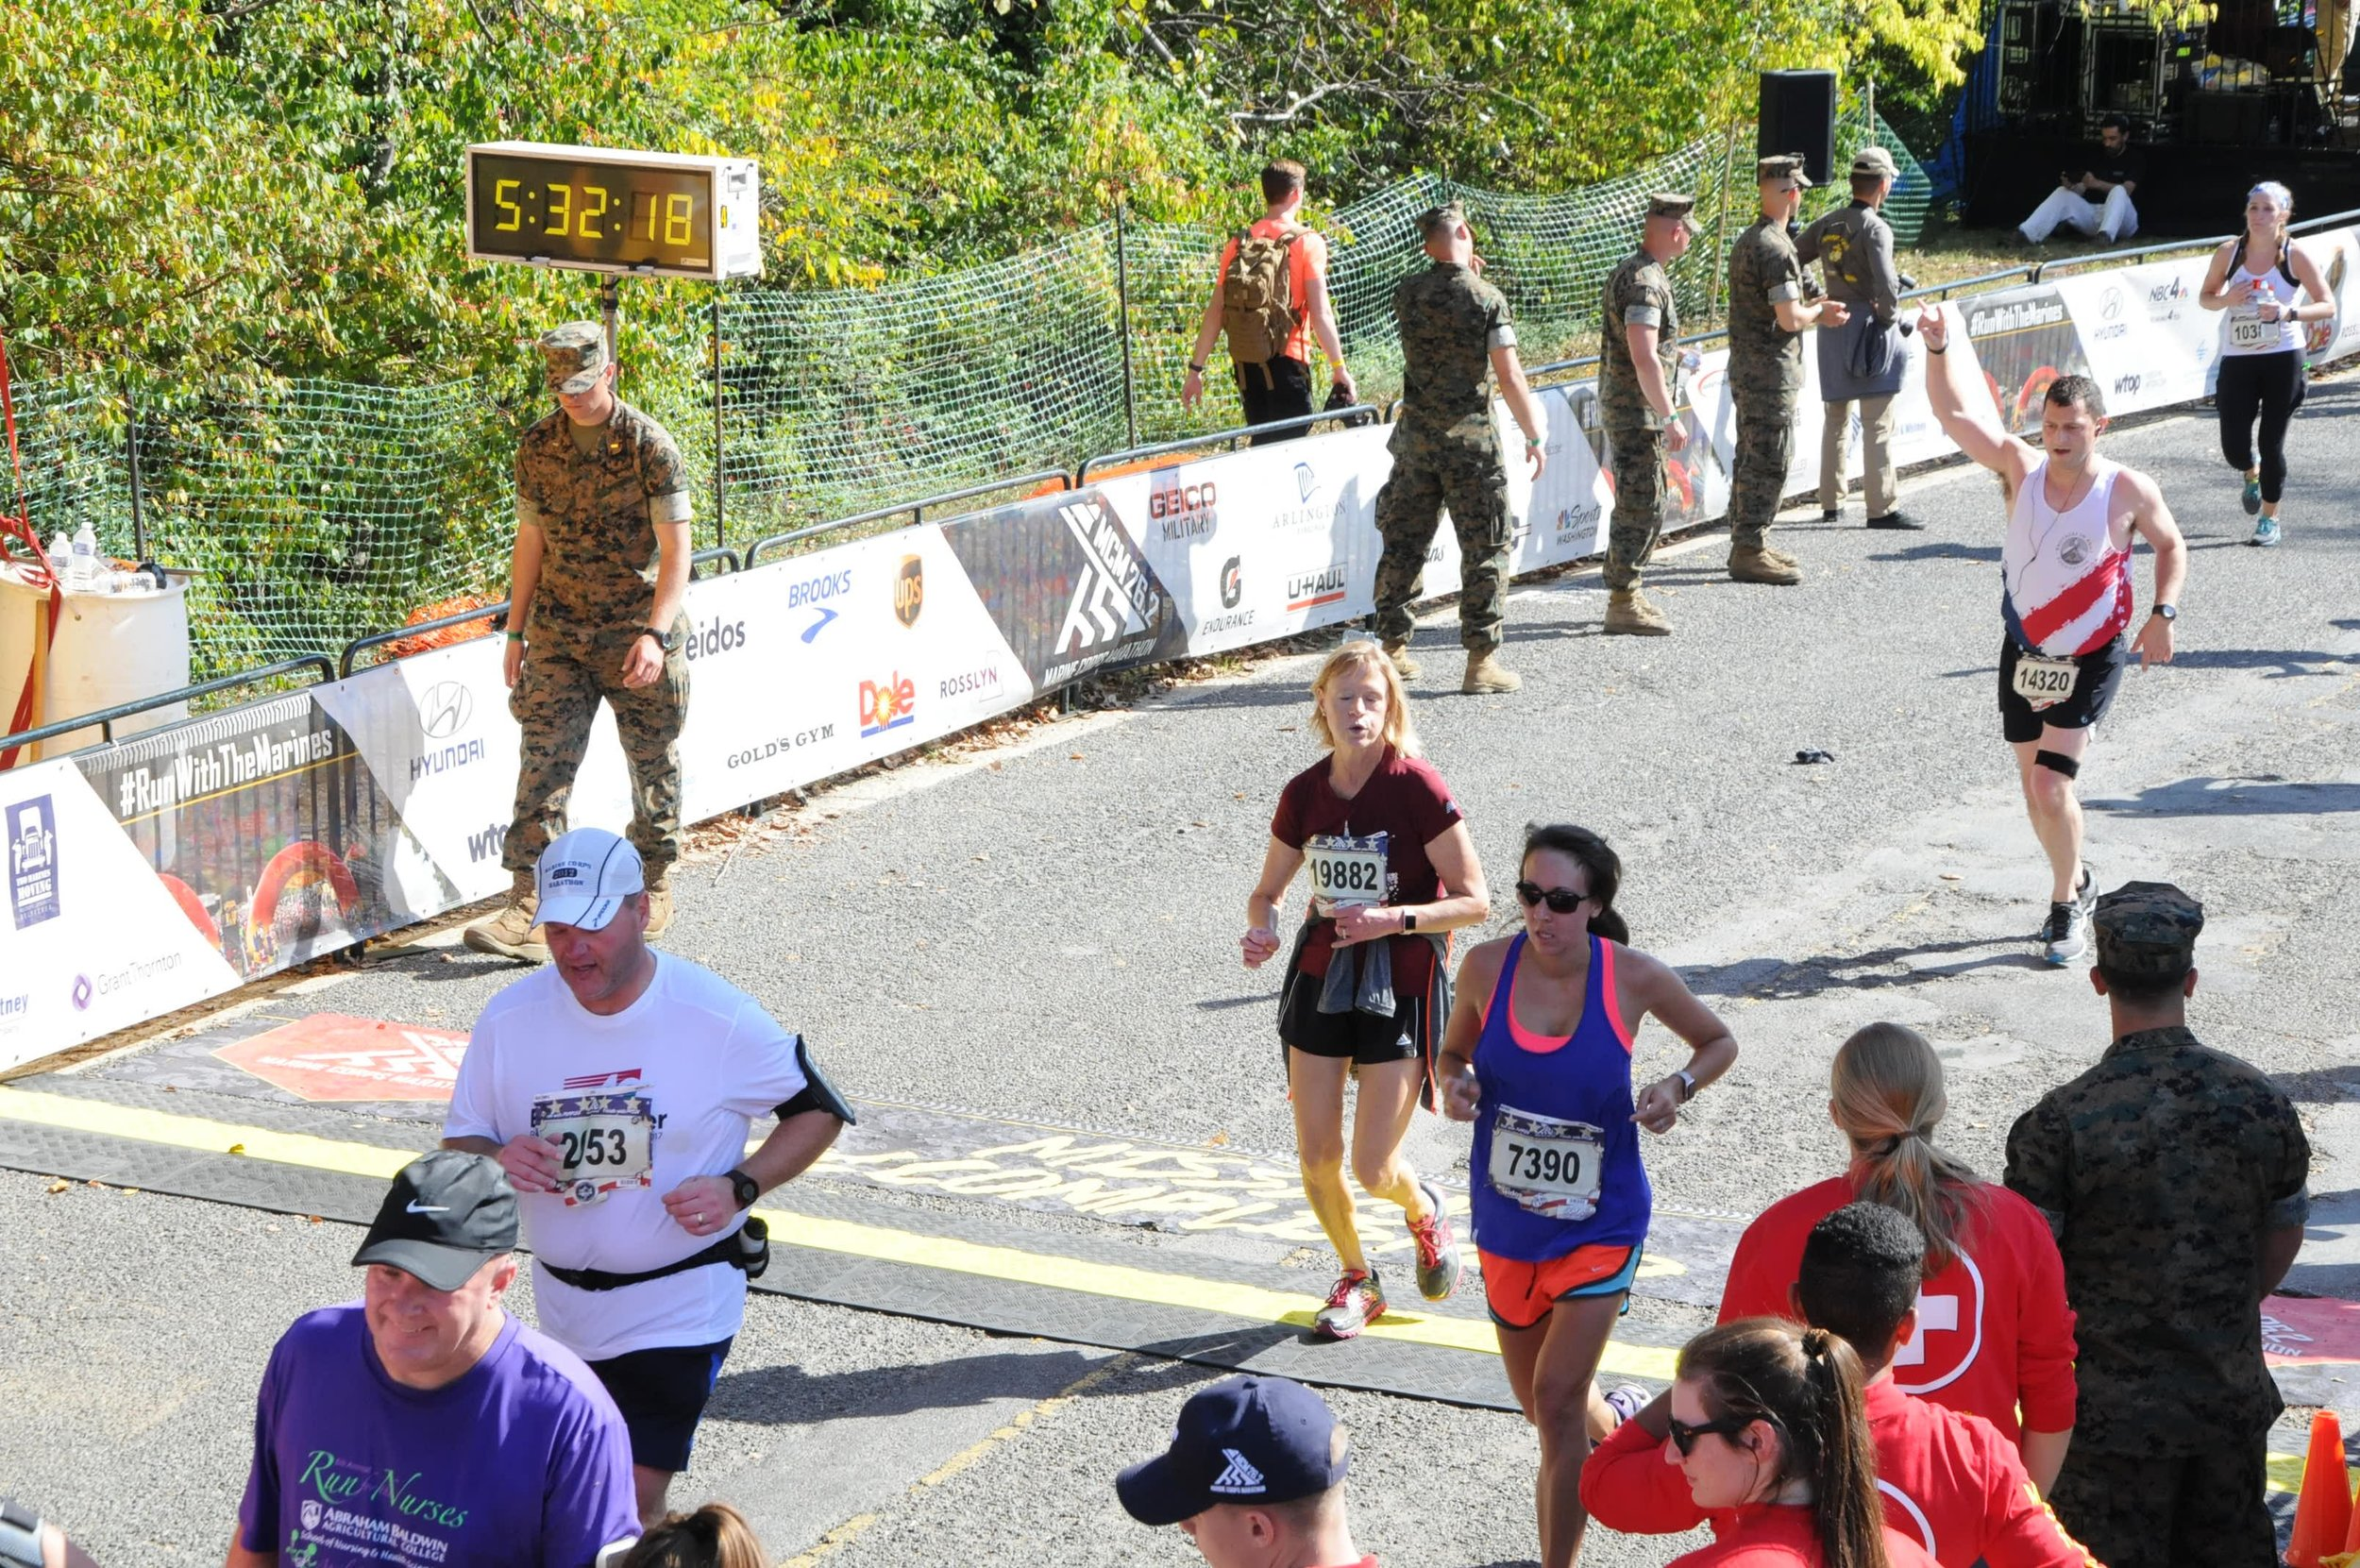 everyone is exhausted at The end of a marathon, as seen above at the Marine corps marathon 2017.  MOre physical activity = Better sleep